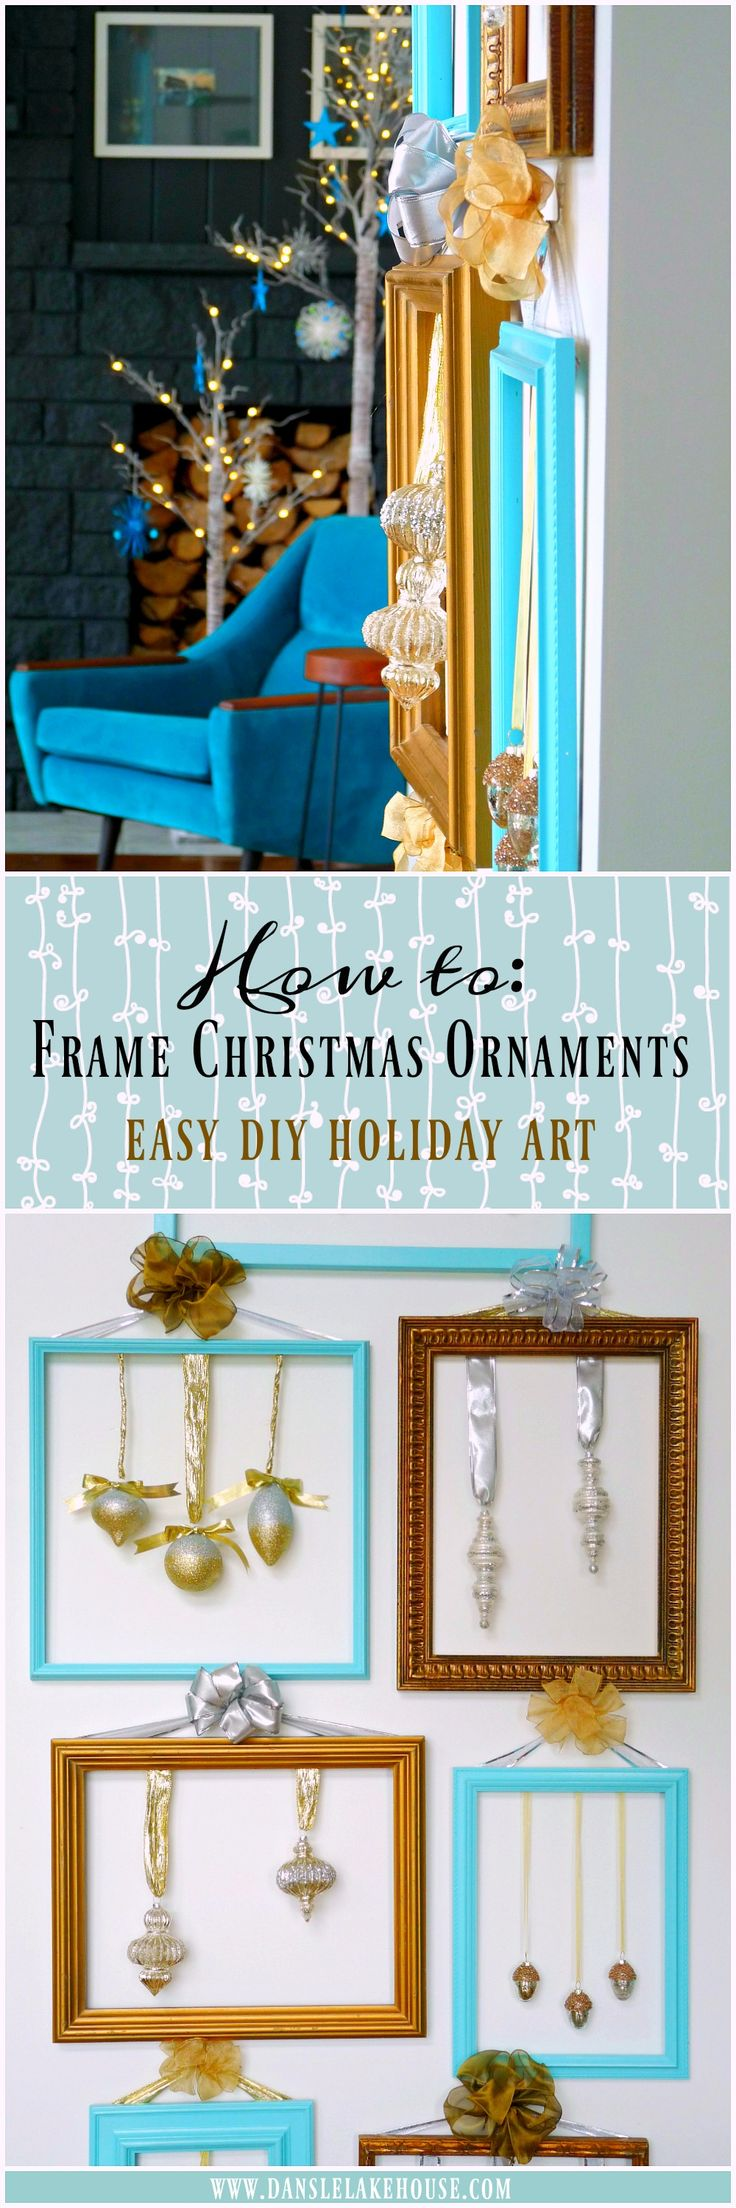 """How to Make """"Framed"""" Christmas Ornaments - Such a Cute Idea for Easy Holiday Art // Click Through for Other Unique Ideas for Displaying Ornaments - Alternatives to the Traditional Christmas Tree // Teal Holiday Decor Scheme"""